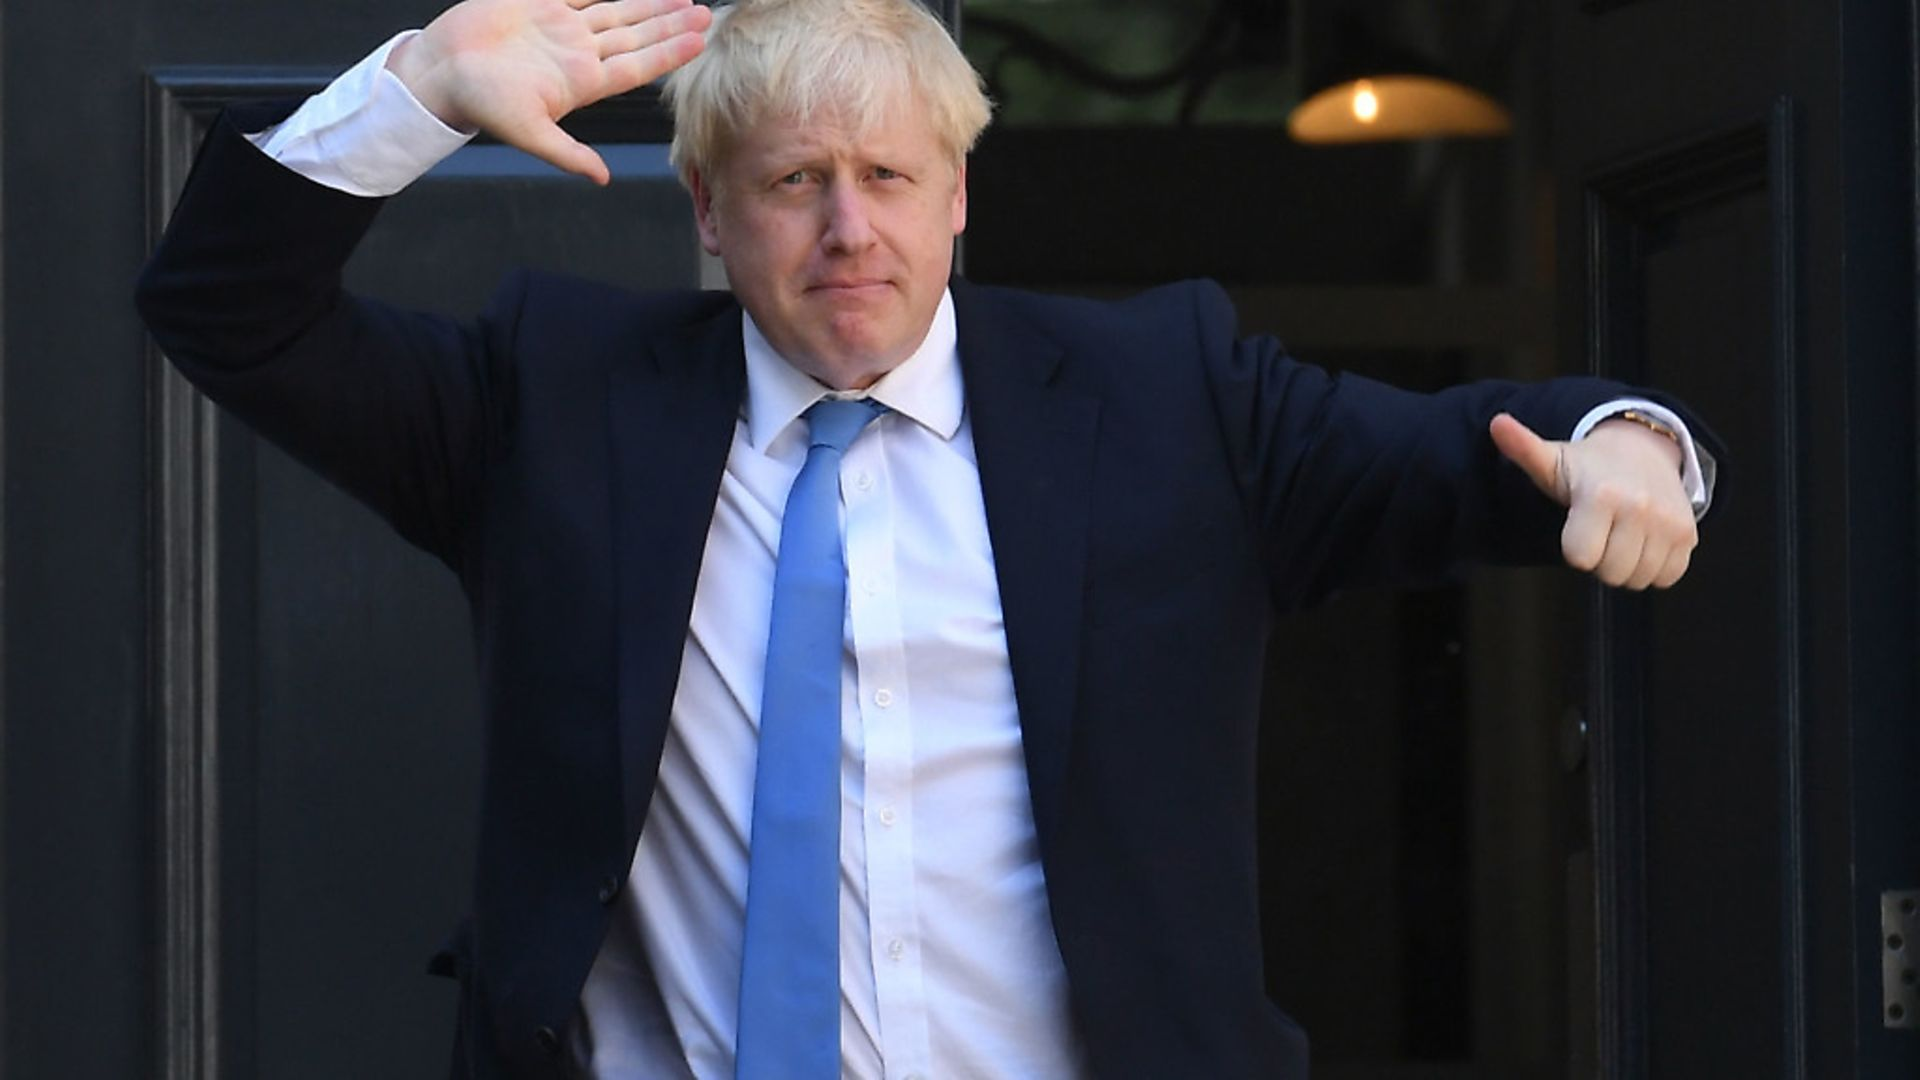 Prime minister Boris Johnson arriving at Conservative party HQ in Westminste. Photograph: Stefan Rousseau/PA Wire - Credit: PA